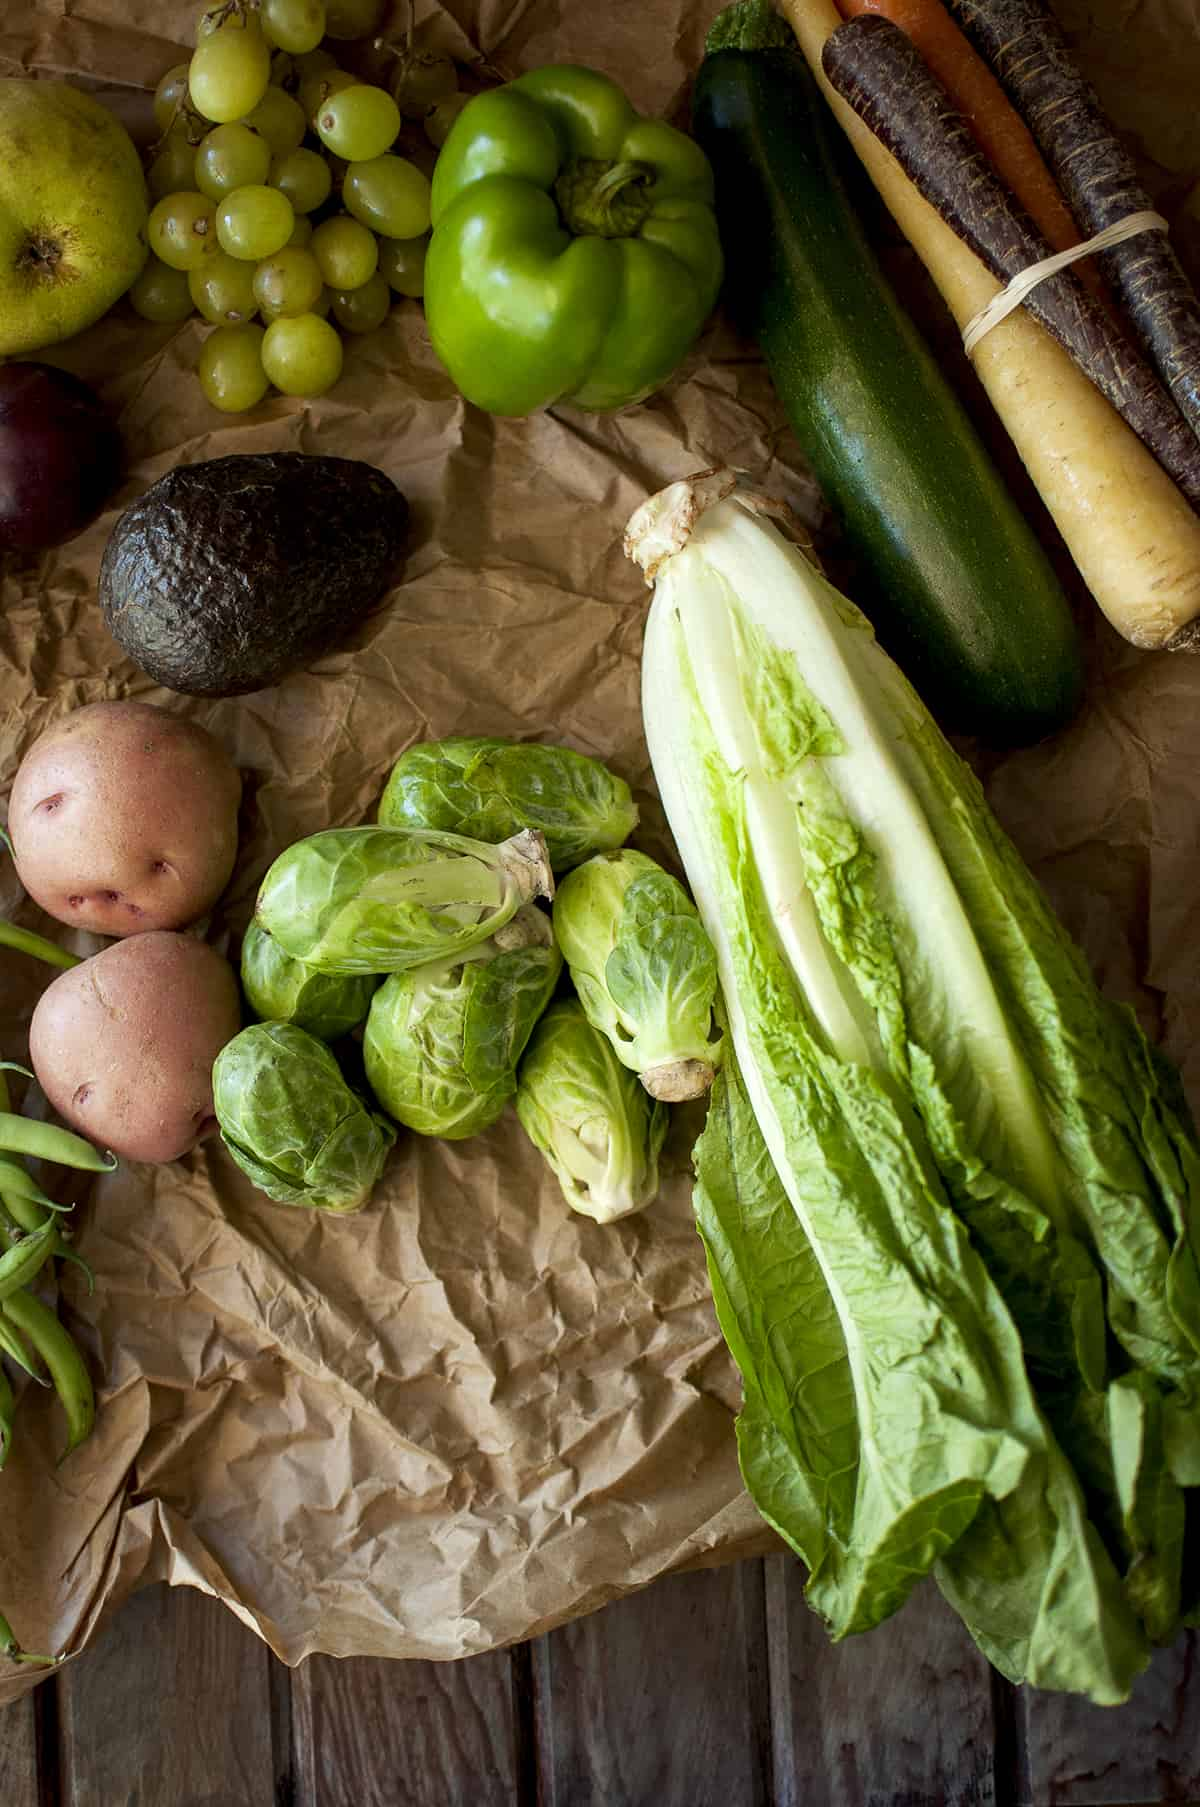 Brown paper with lettuce, brussel sprouts, potatoes, avocado, pepper, zucchini, carrot, grapes and pear